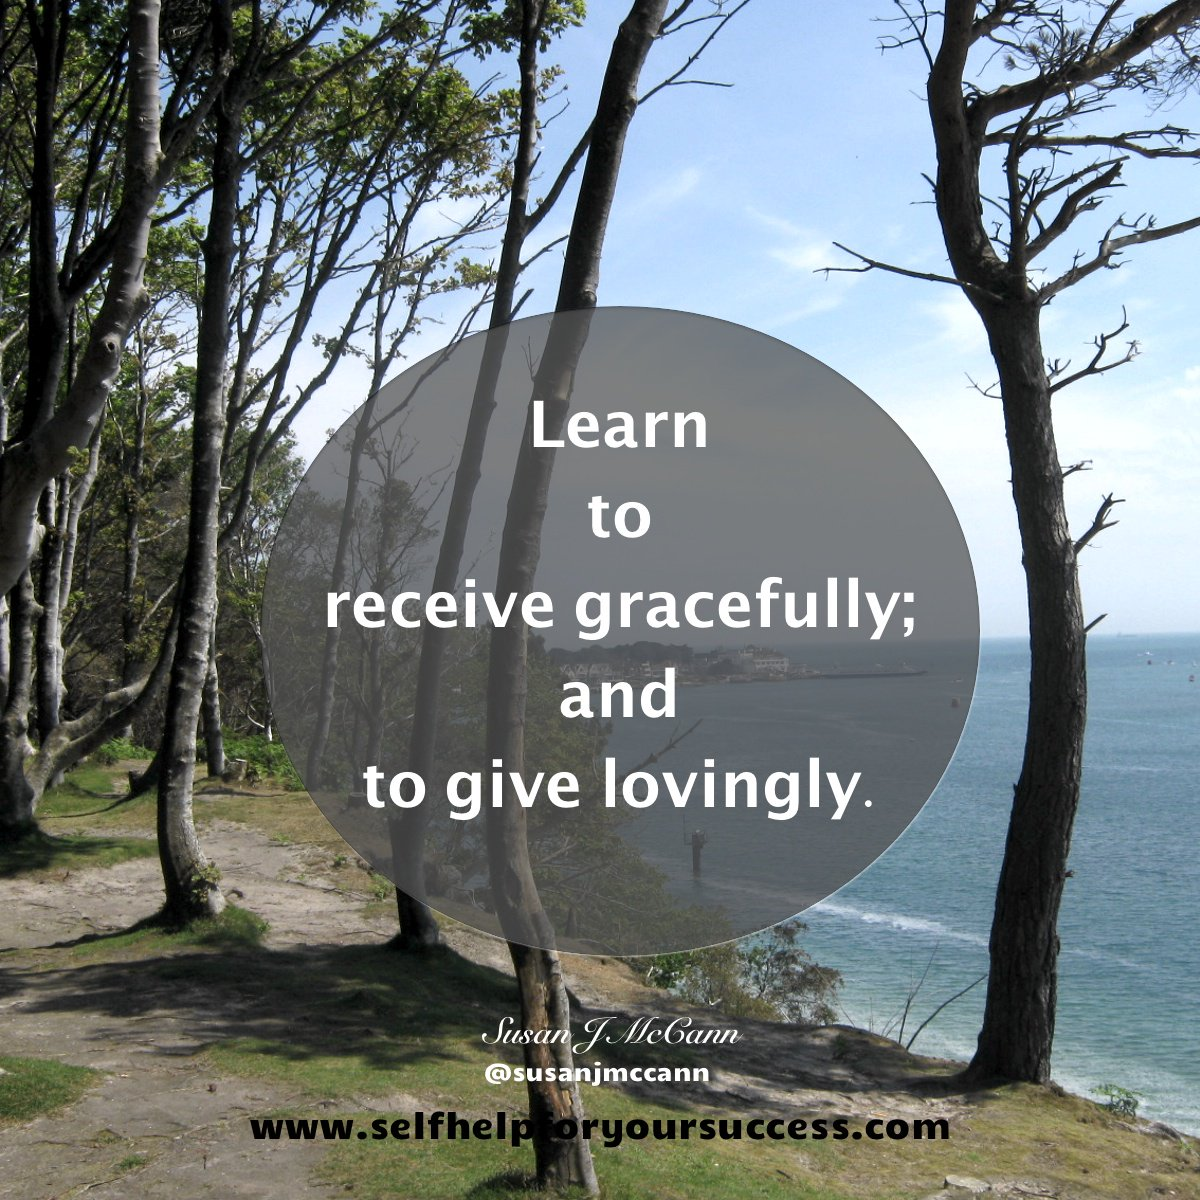 Learn to receive gracefully...  #IQRTG #quote #dailyquote <br>http://pic.twitter.com/jmjp3BgglE